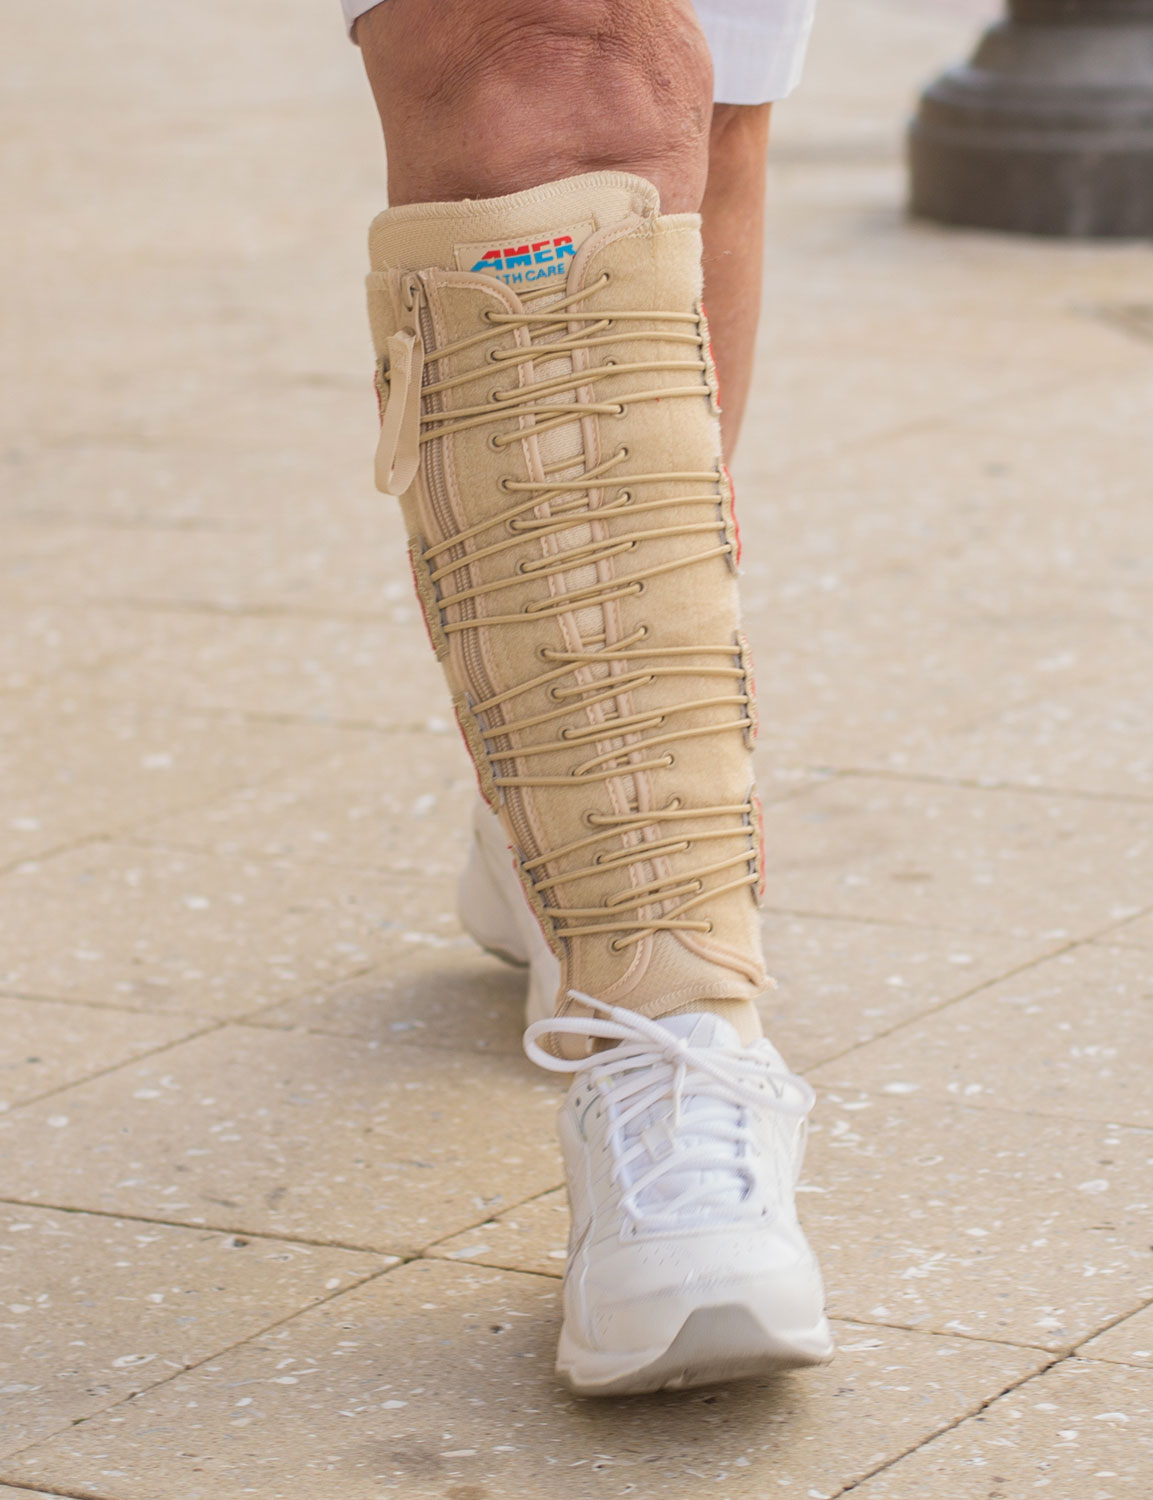 EXTREMIT-EASE Compression Garment on woman walking